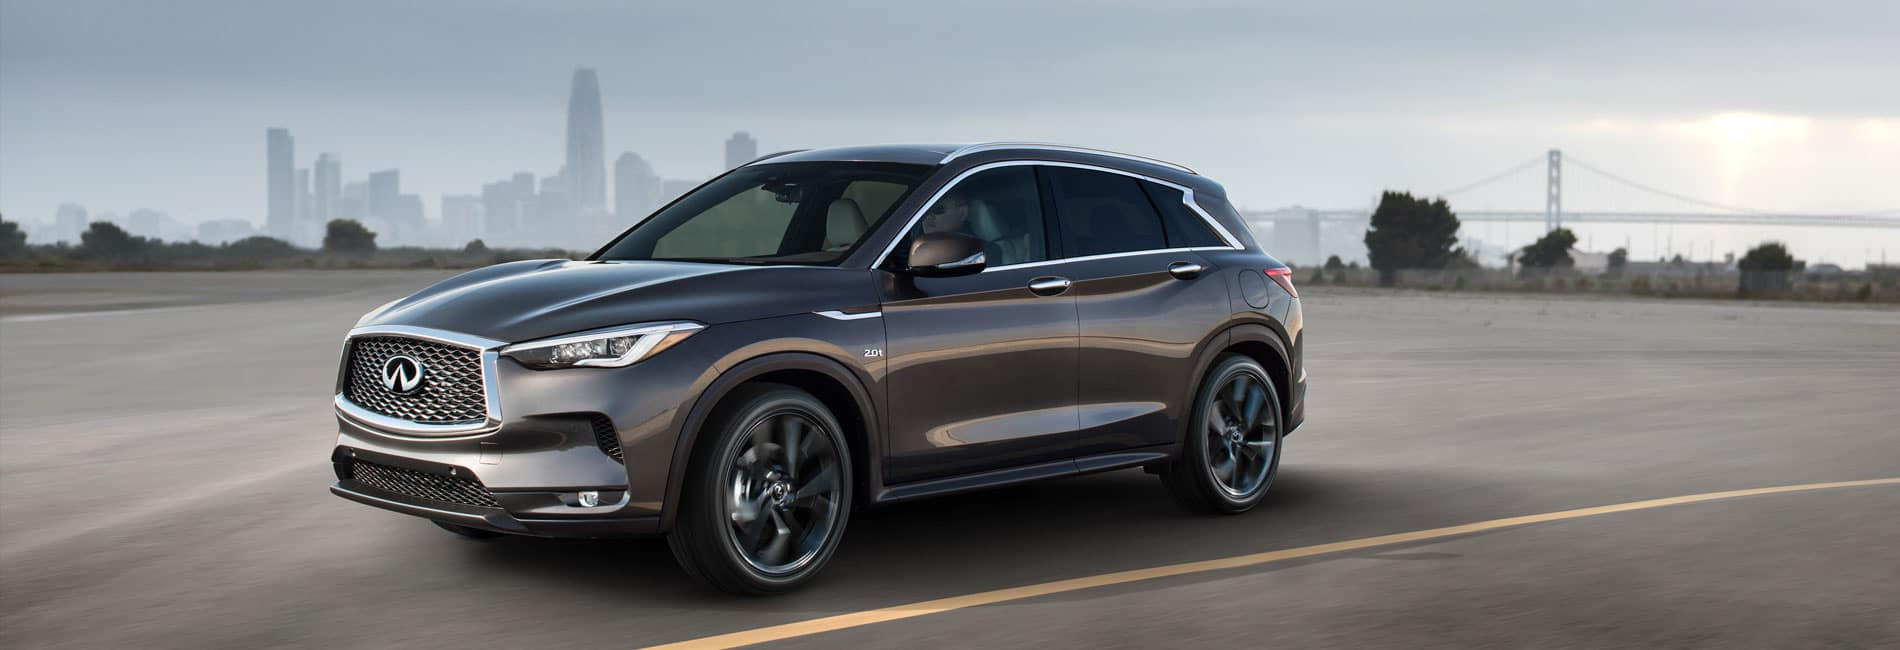 2019 INFINITI QX50 for Sale in Chicago, IL